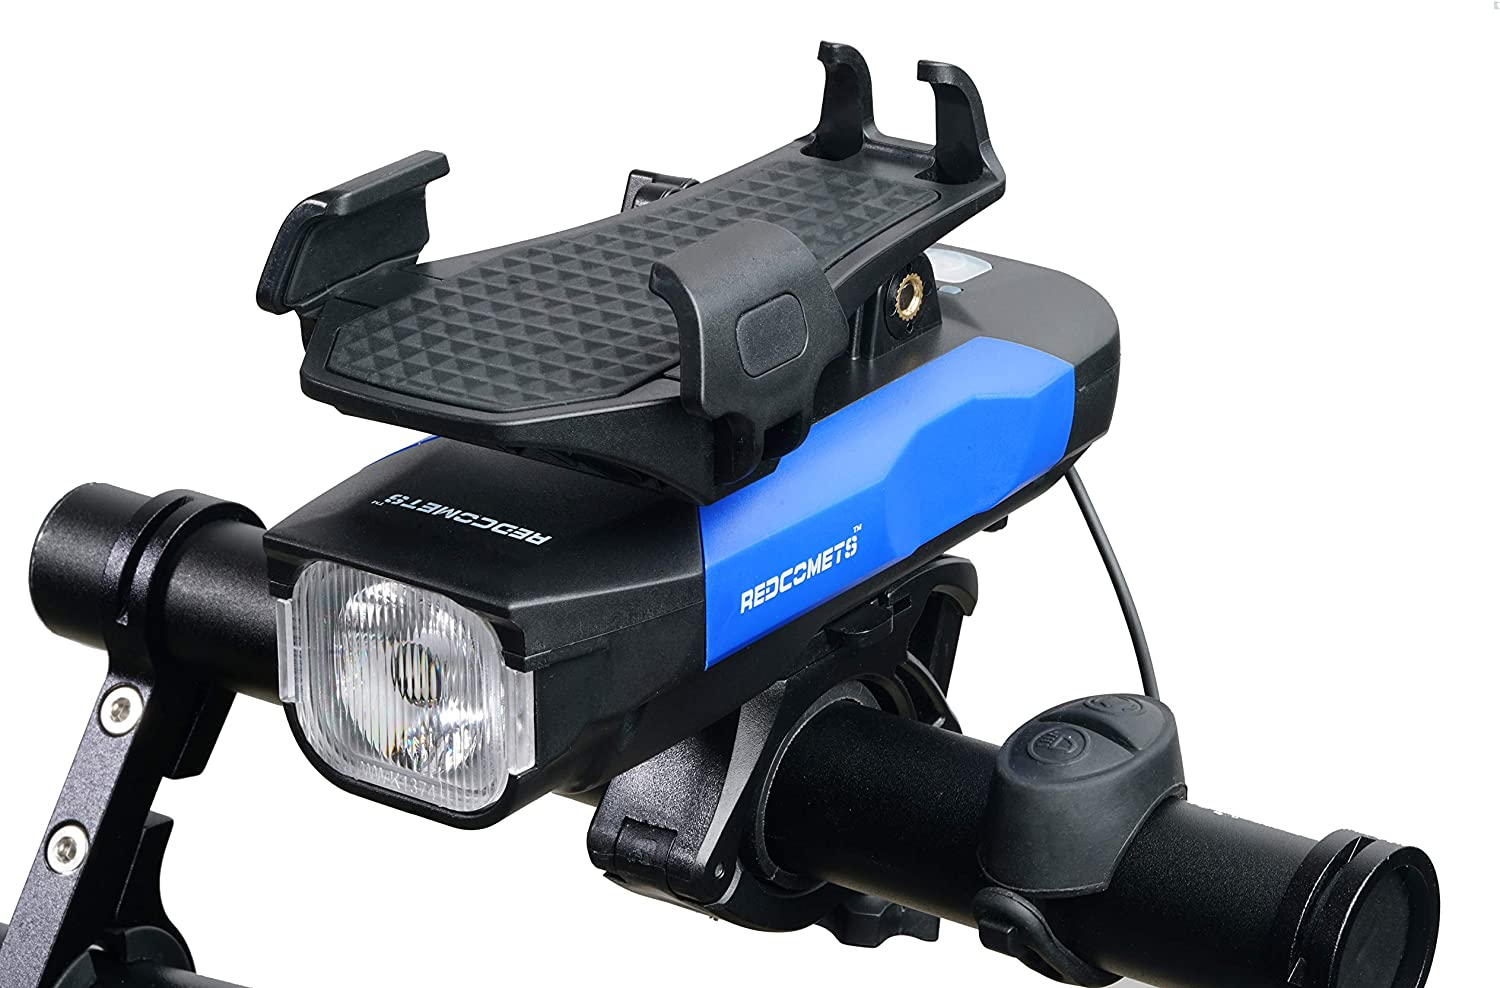 Redcomets 4-in-1 Multi-Functional Bicycle Light a Comes online Lowest price challenge shopping with USB